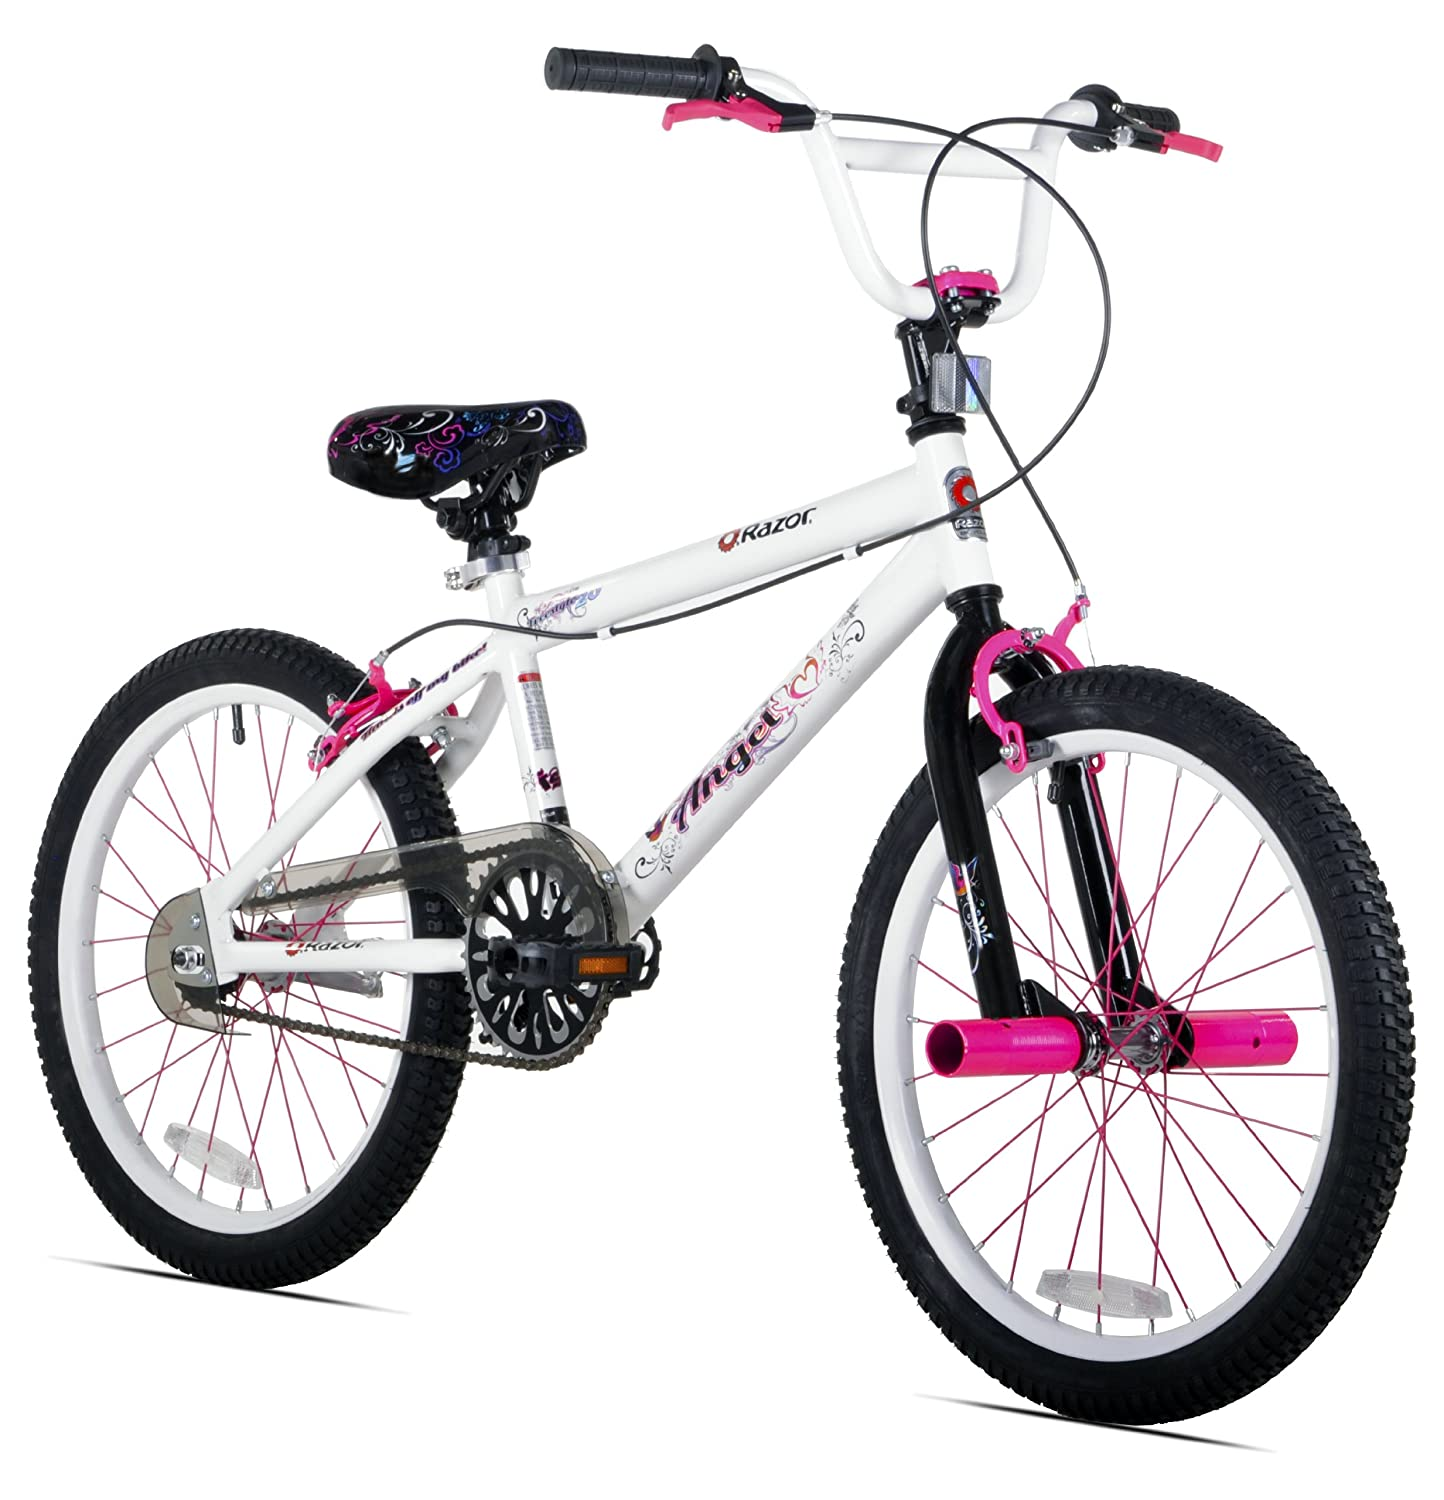 Bikes For Sale Cheap 20'' Only Razor Girl s Angel Bike White